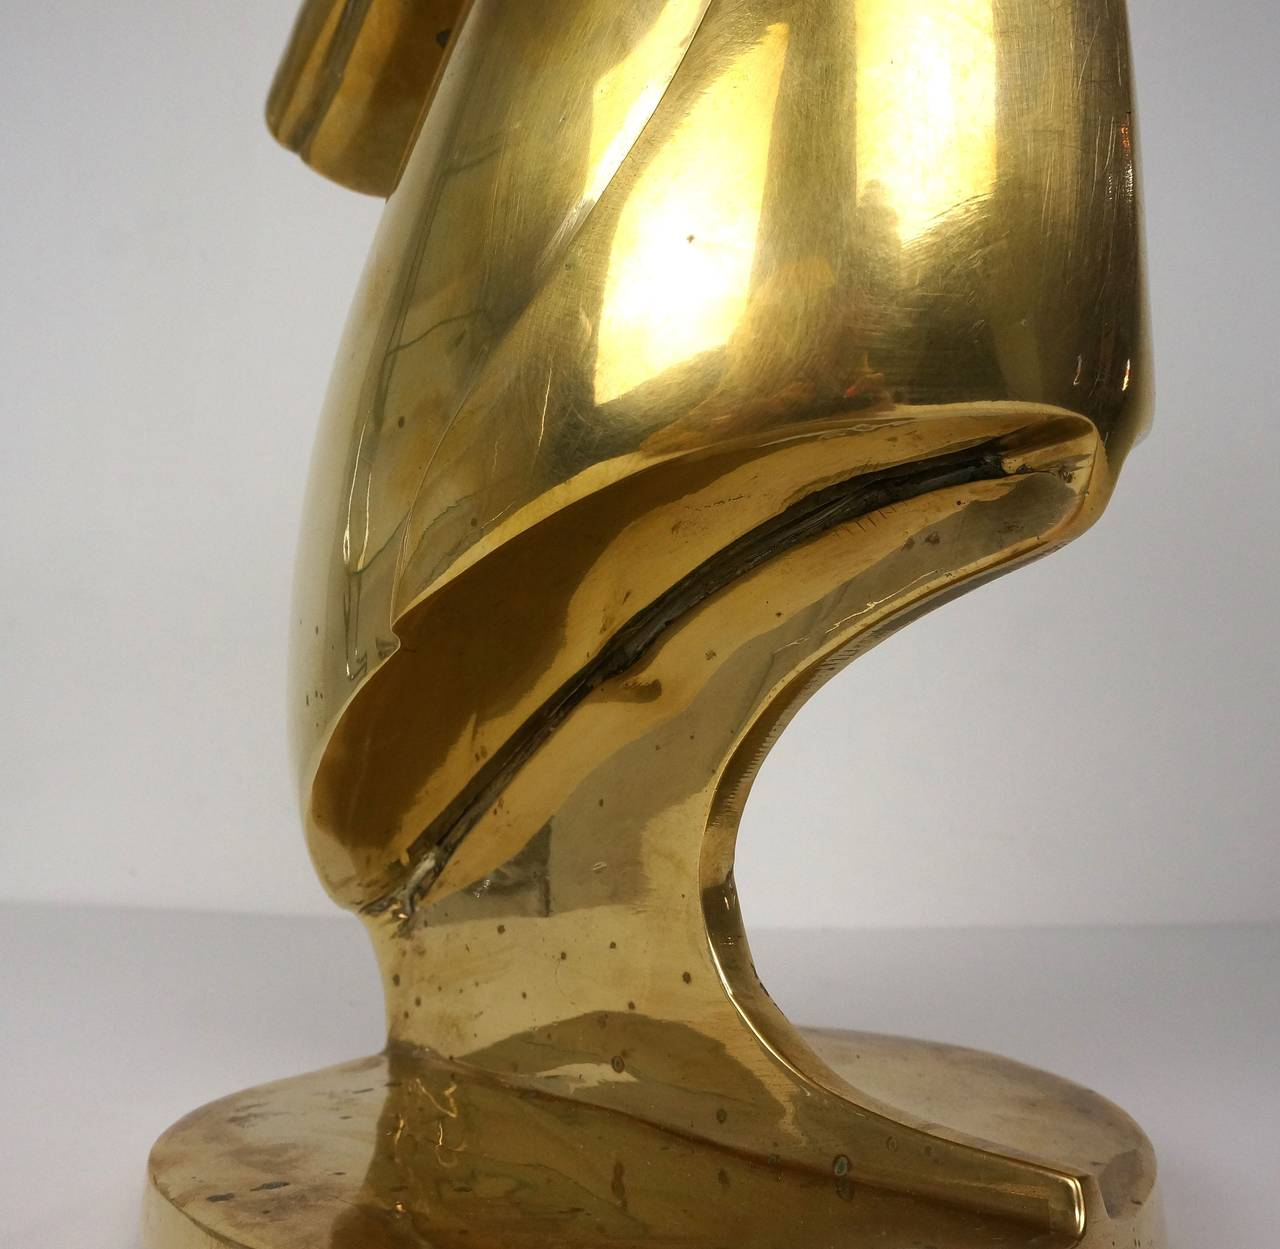 Art Deco Style Sculpture of a Gazelle / Antelope in Cast Brass, Mid-Century For Sale 3